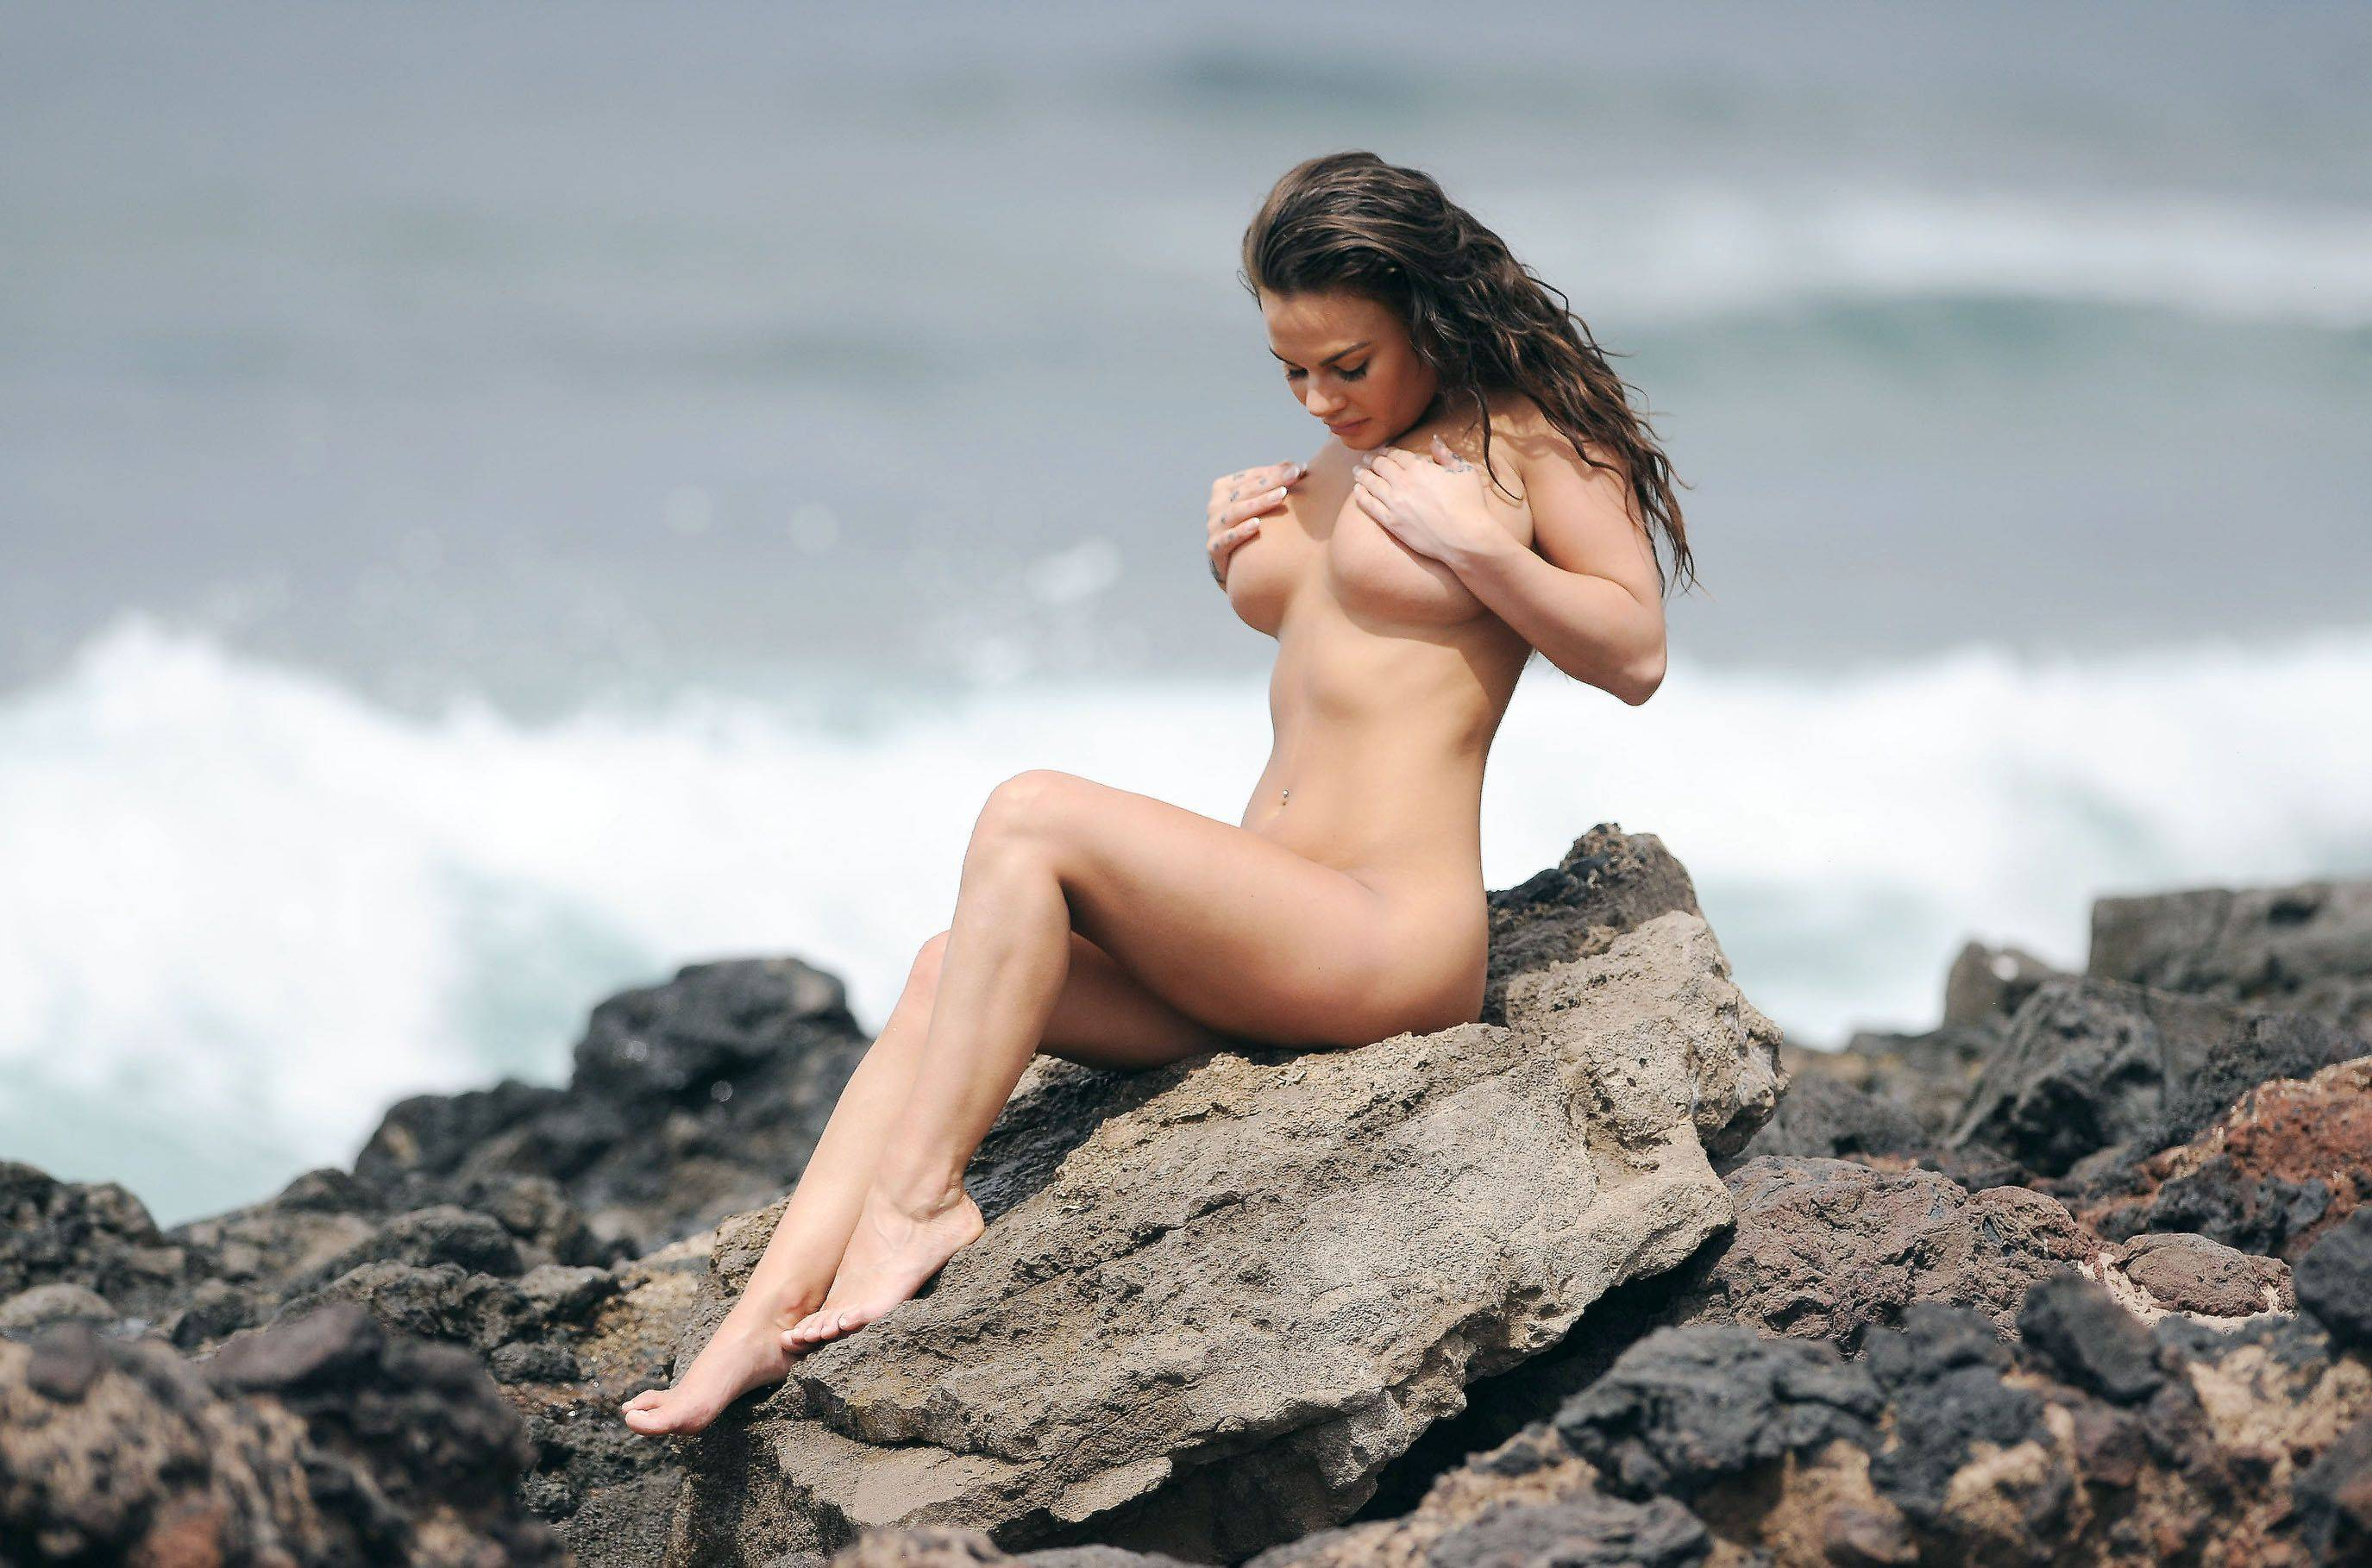 Chantelle Connelly naked in Tenerife on May 4, 2016